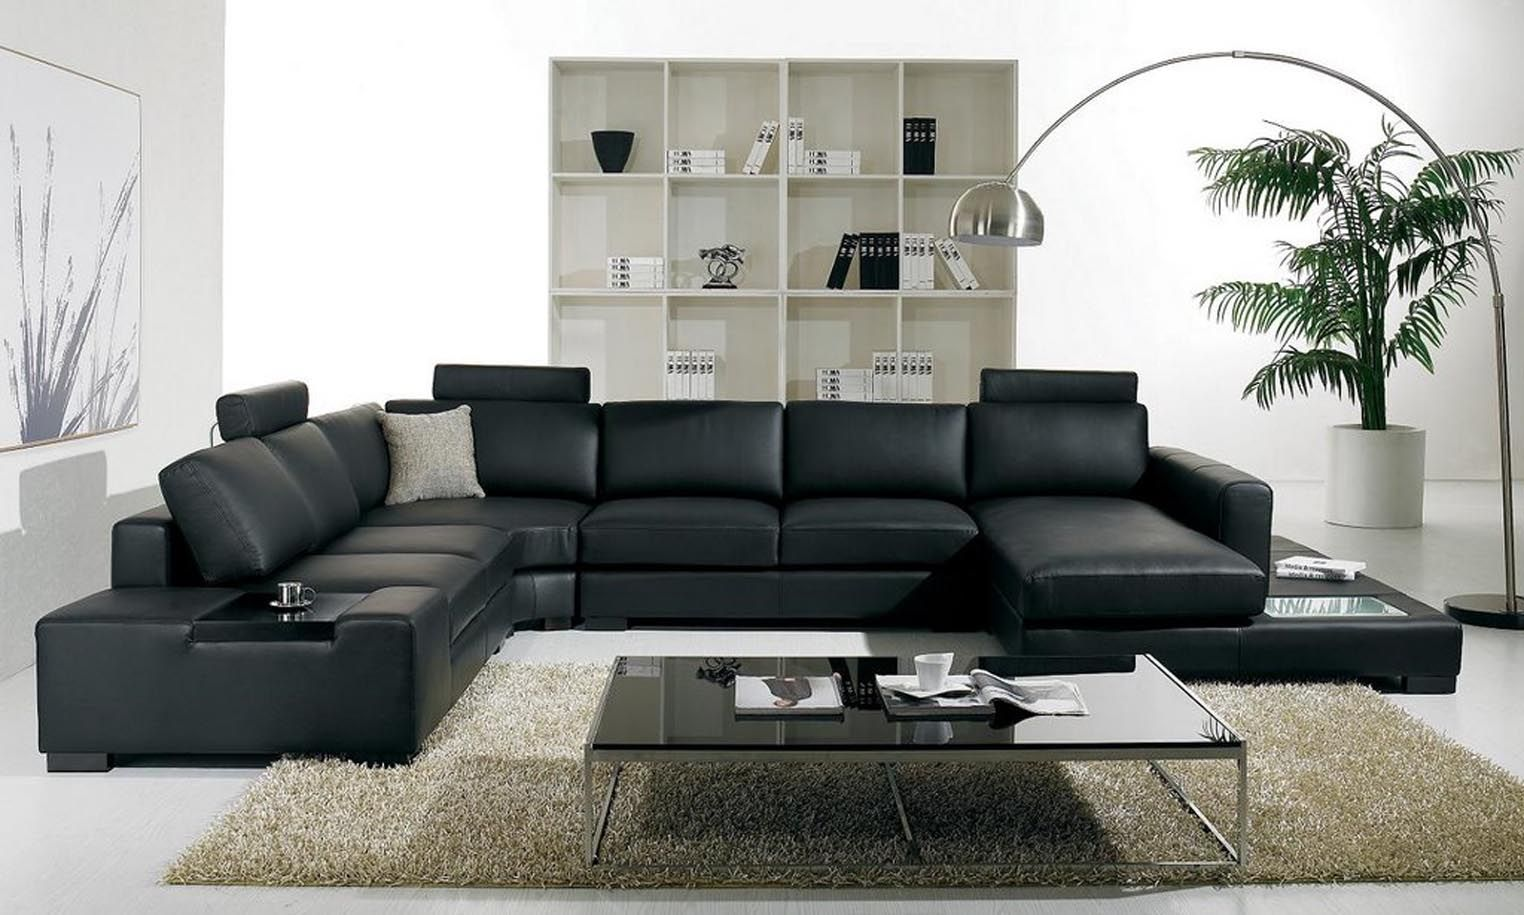 Comfortable black leather sectional sofa  The Versatility and Allure of Leather Seating